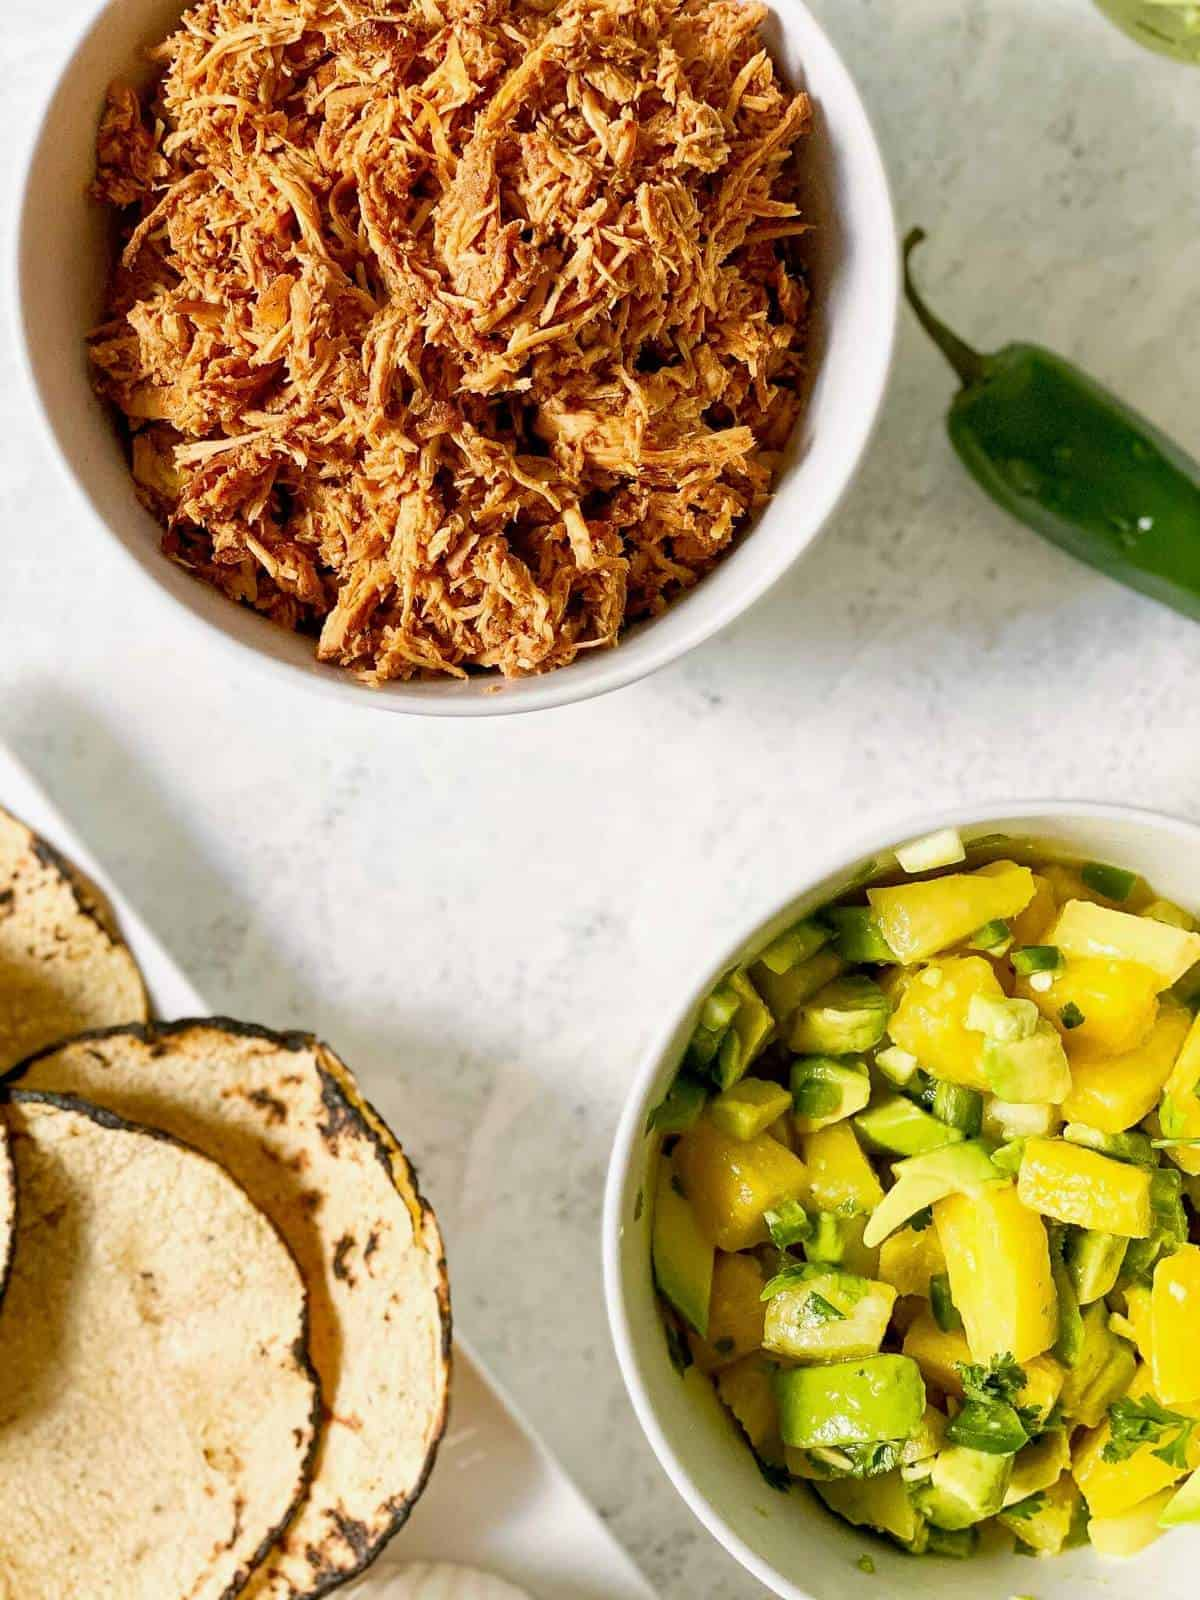 corn tortillas on plate with bbq chicken and pineapple salsa